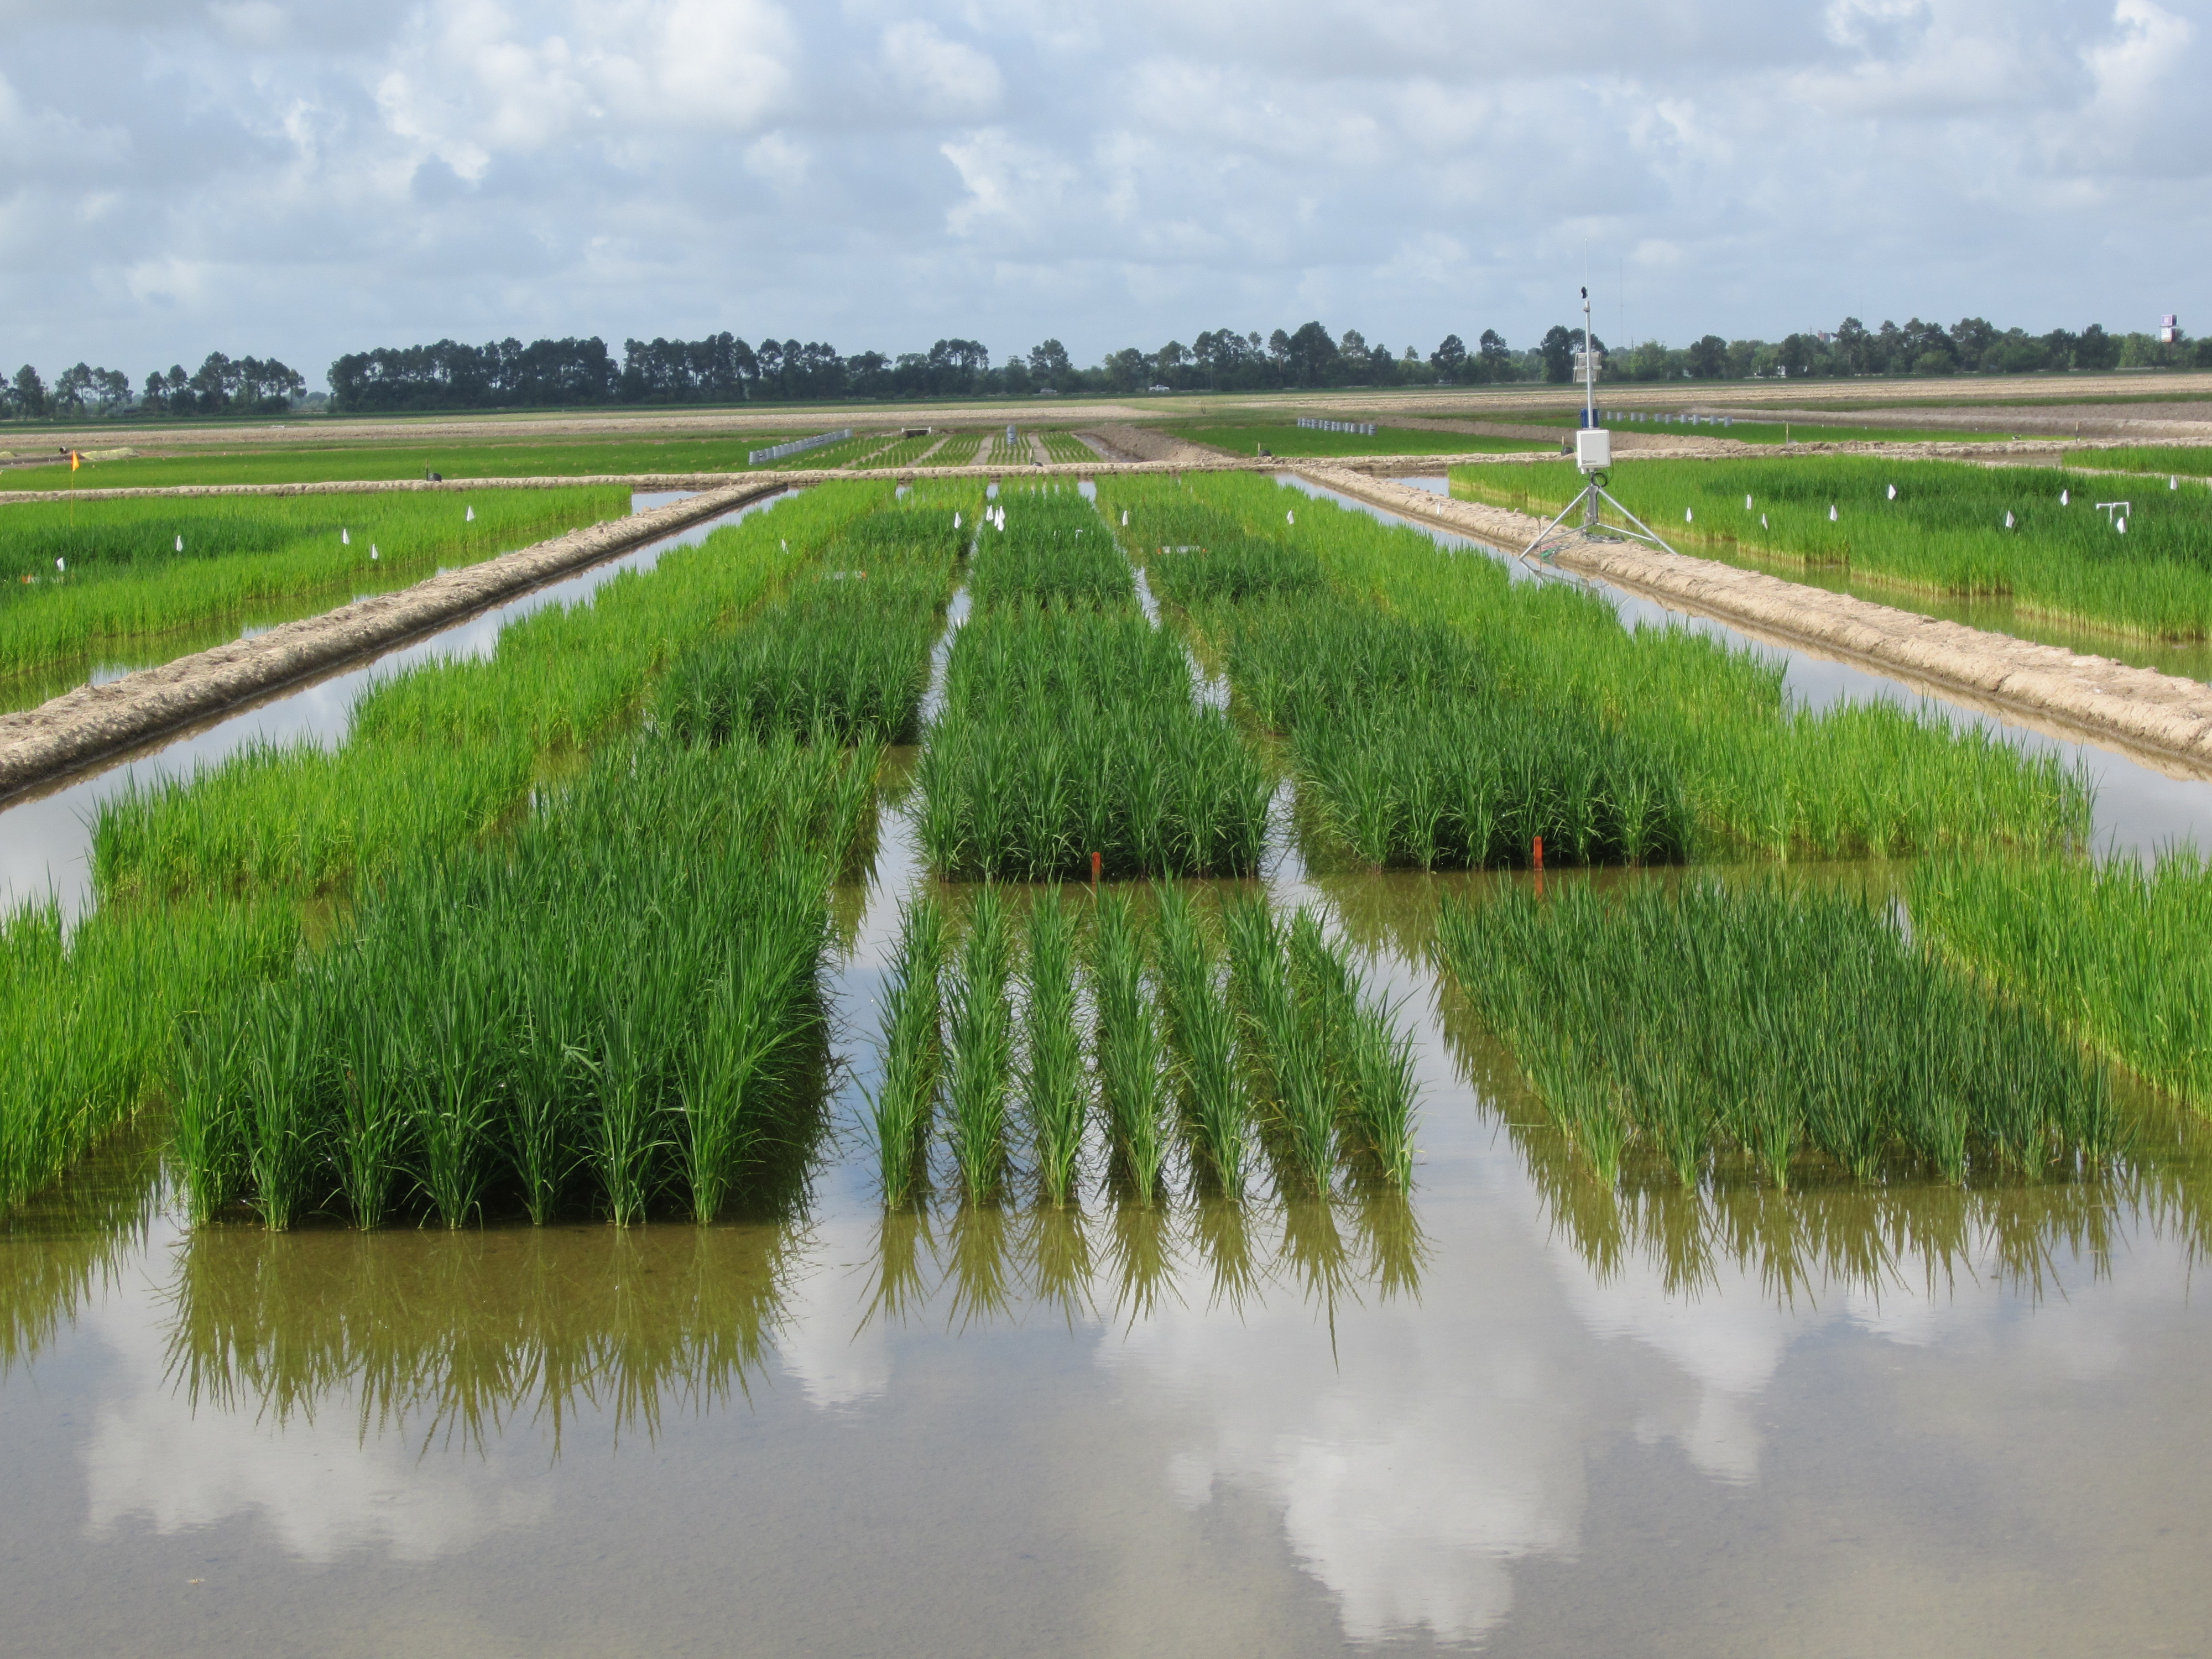 Rayville meeting on Nov. 15 to feature growing rice in rows